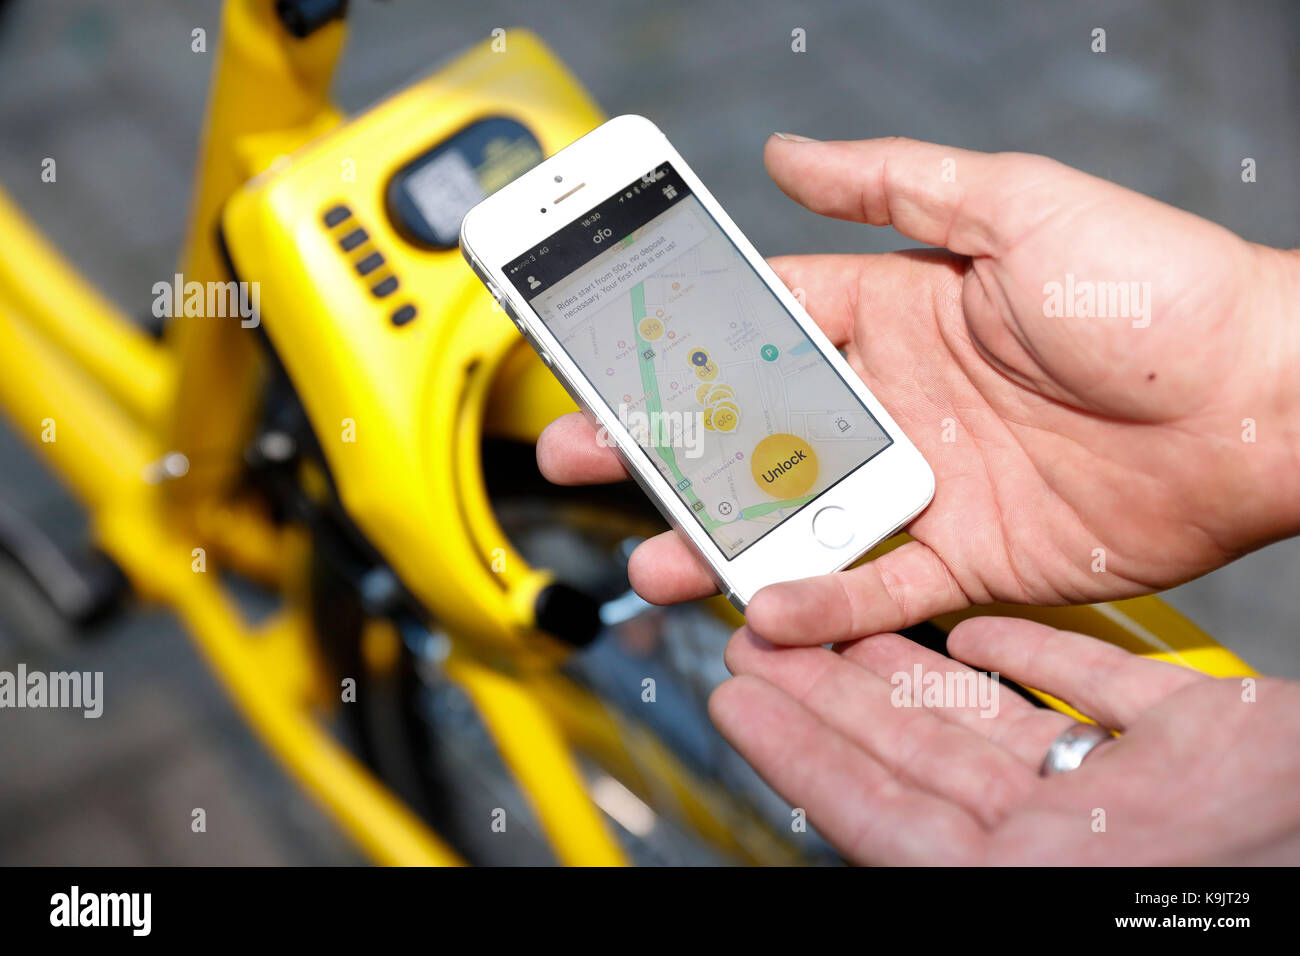 How to Unlock an Ofo Bike recommendations